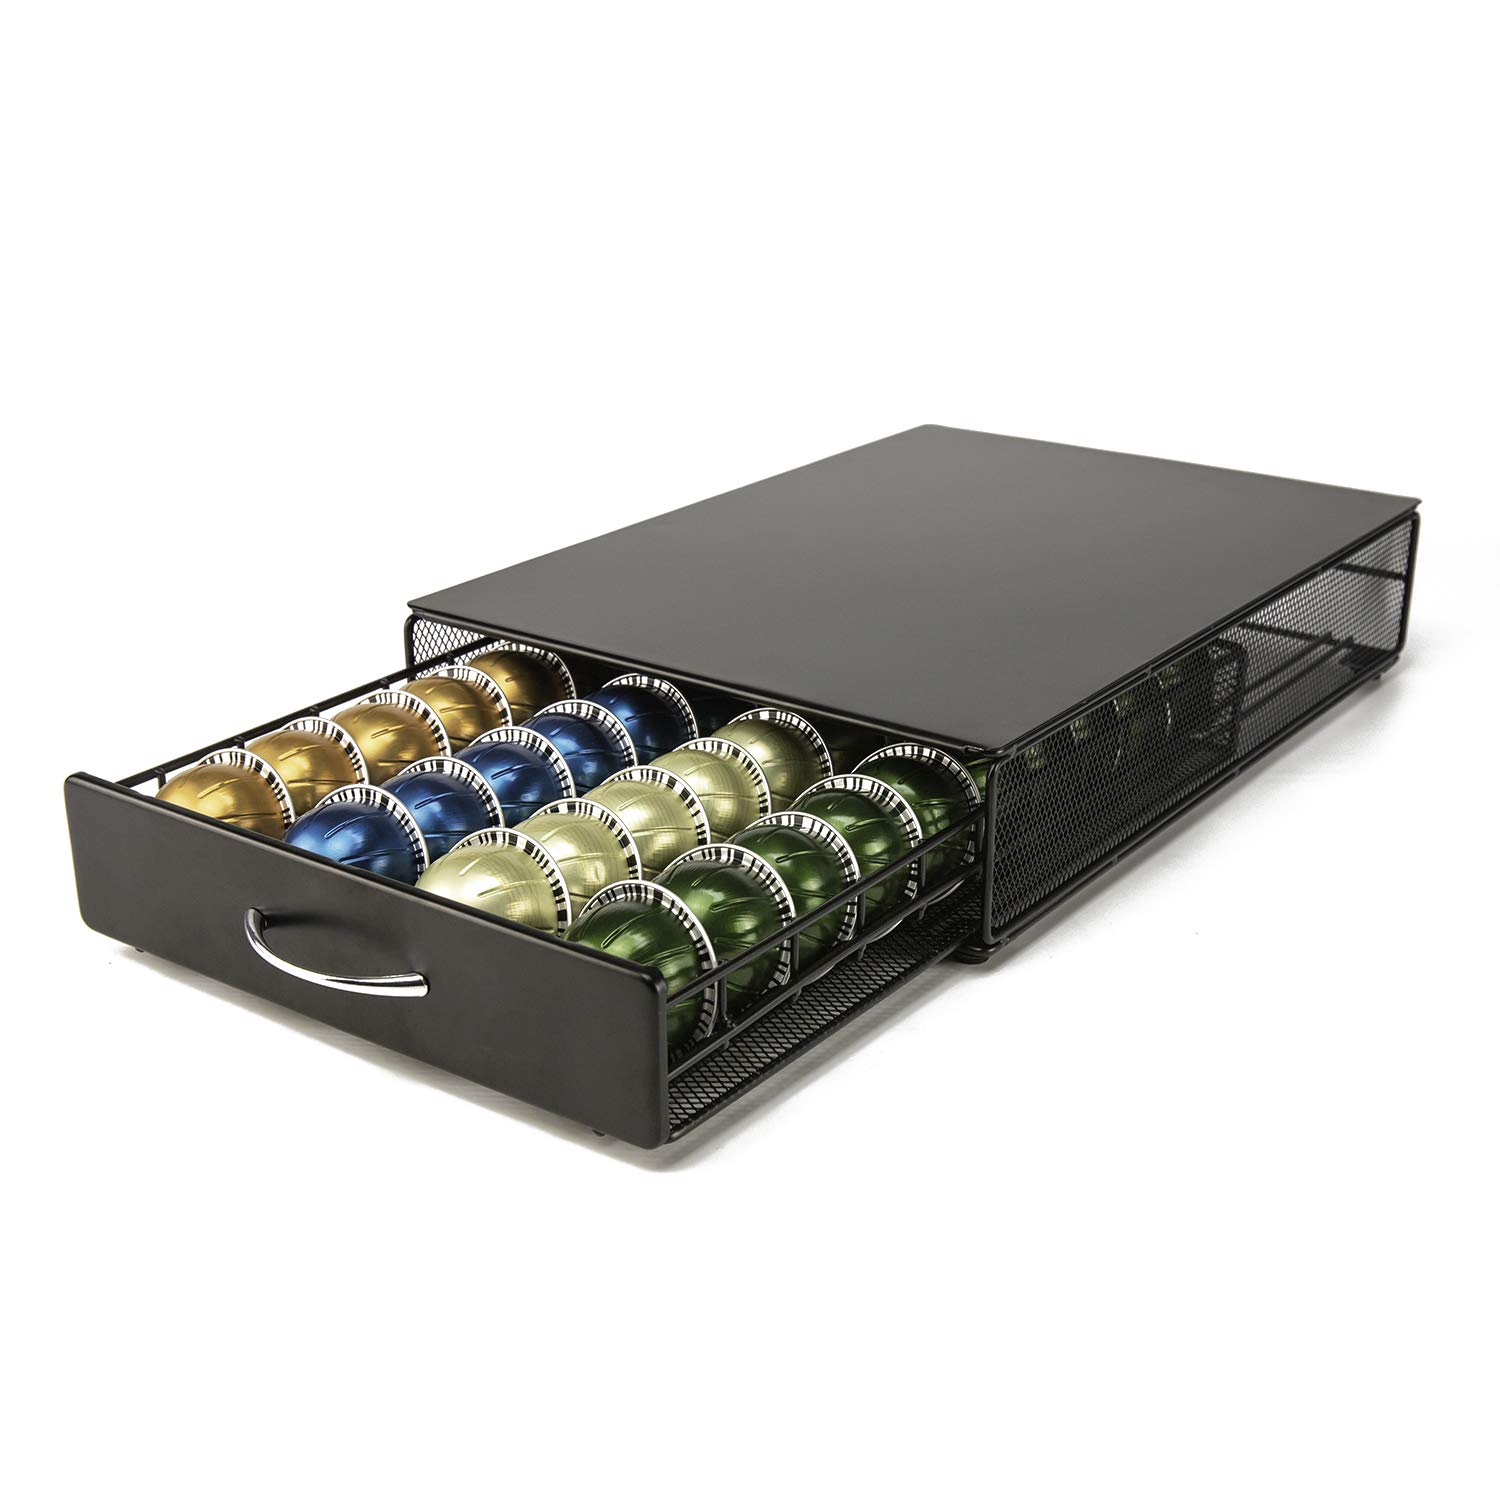 Vertuo Capsule Holder HiveNets Coffee Machine Stand Metal Storage Drawer Dispenser Compatible for Nespresso Vertuoline 40 PCS Capacity Multiple Flavors Pods Organizer Black by HiveNets